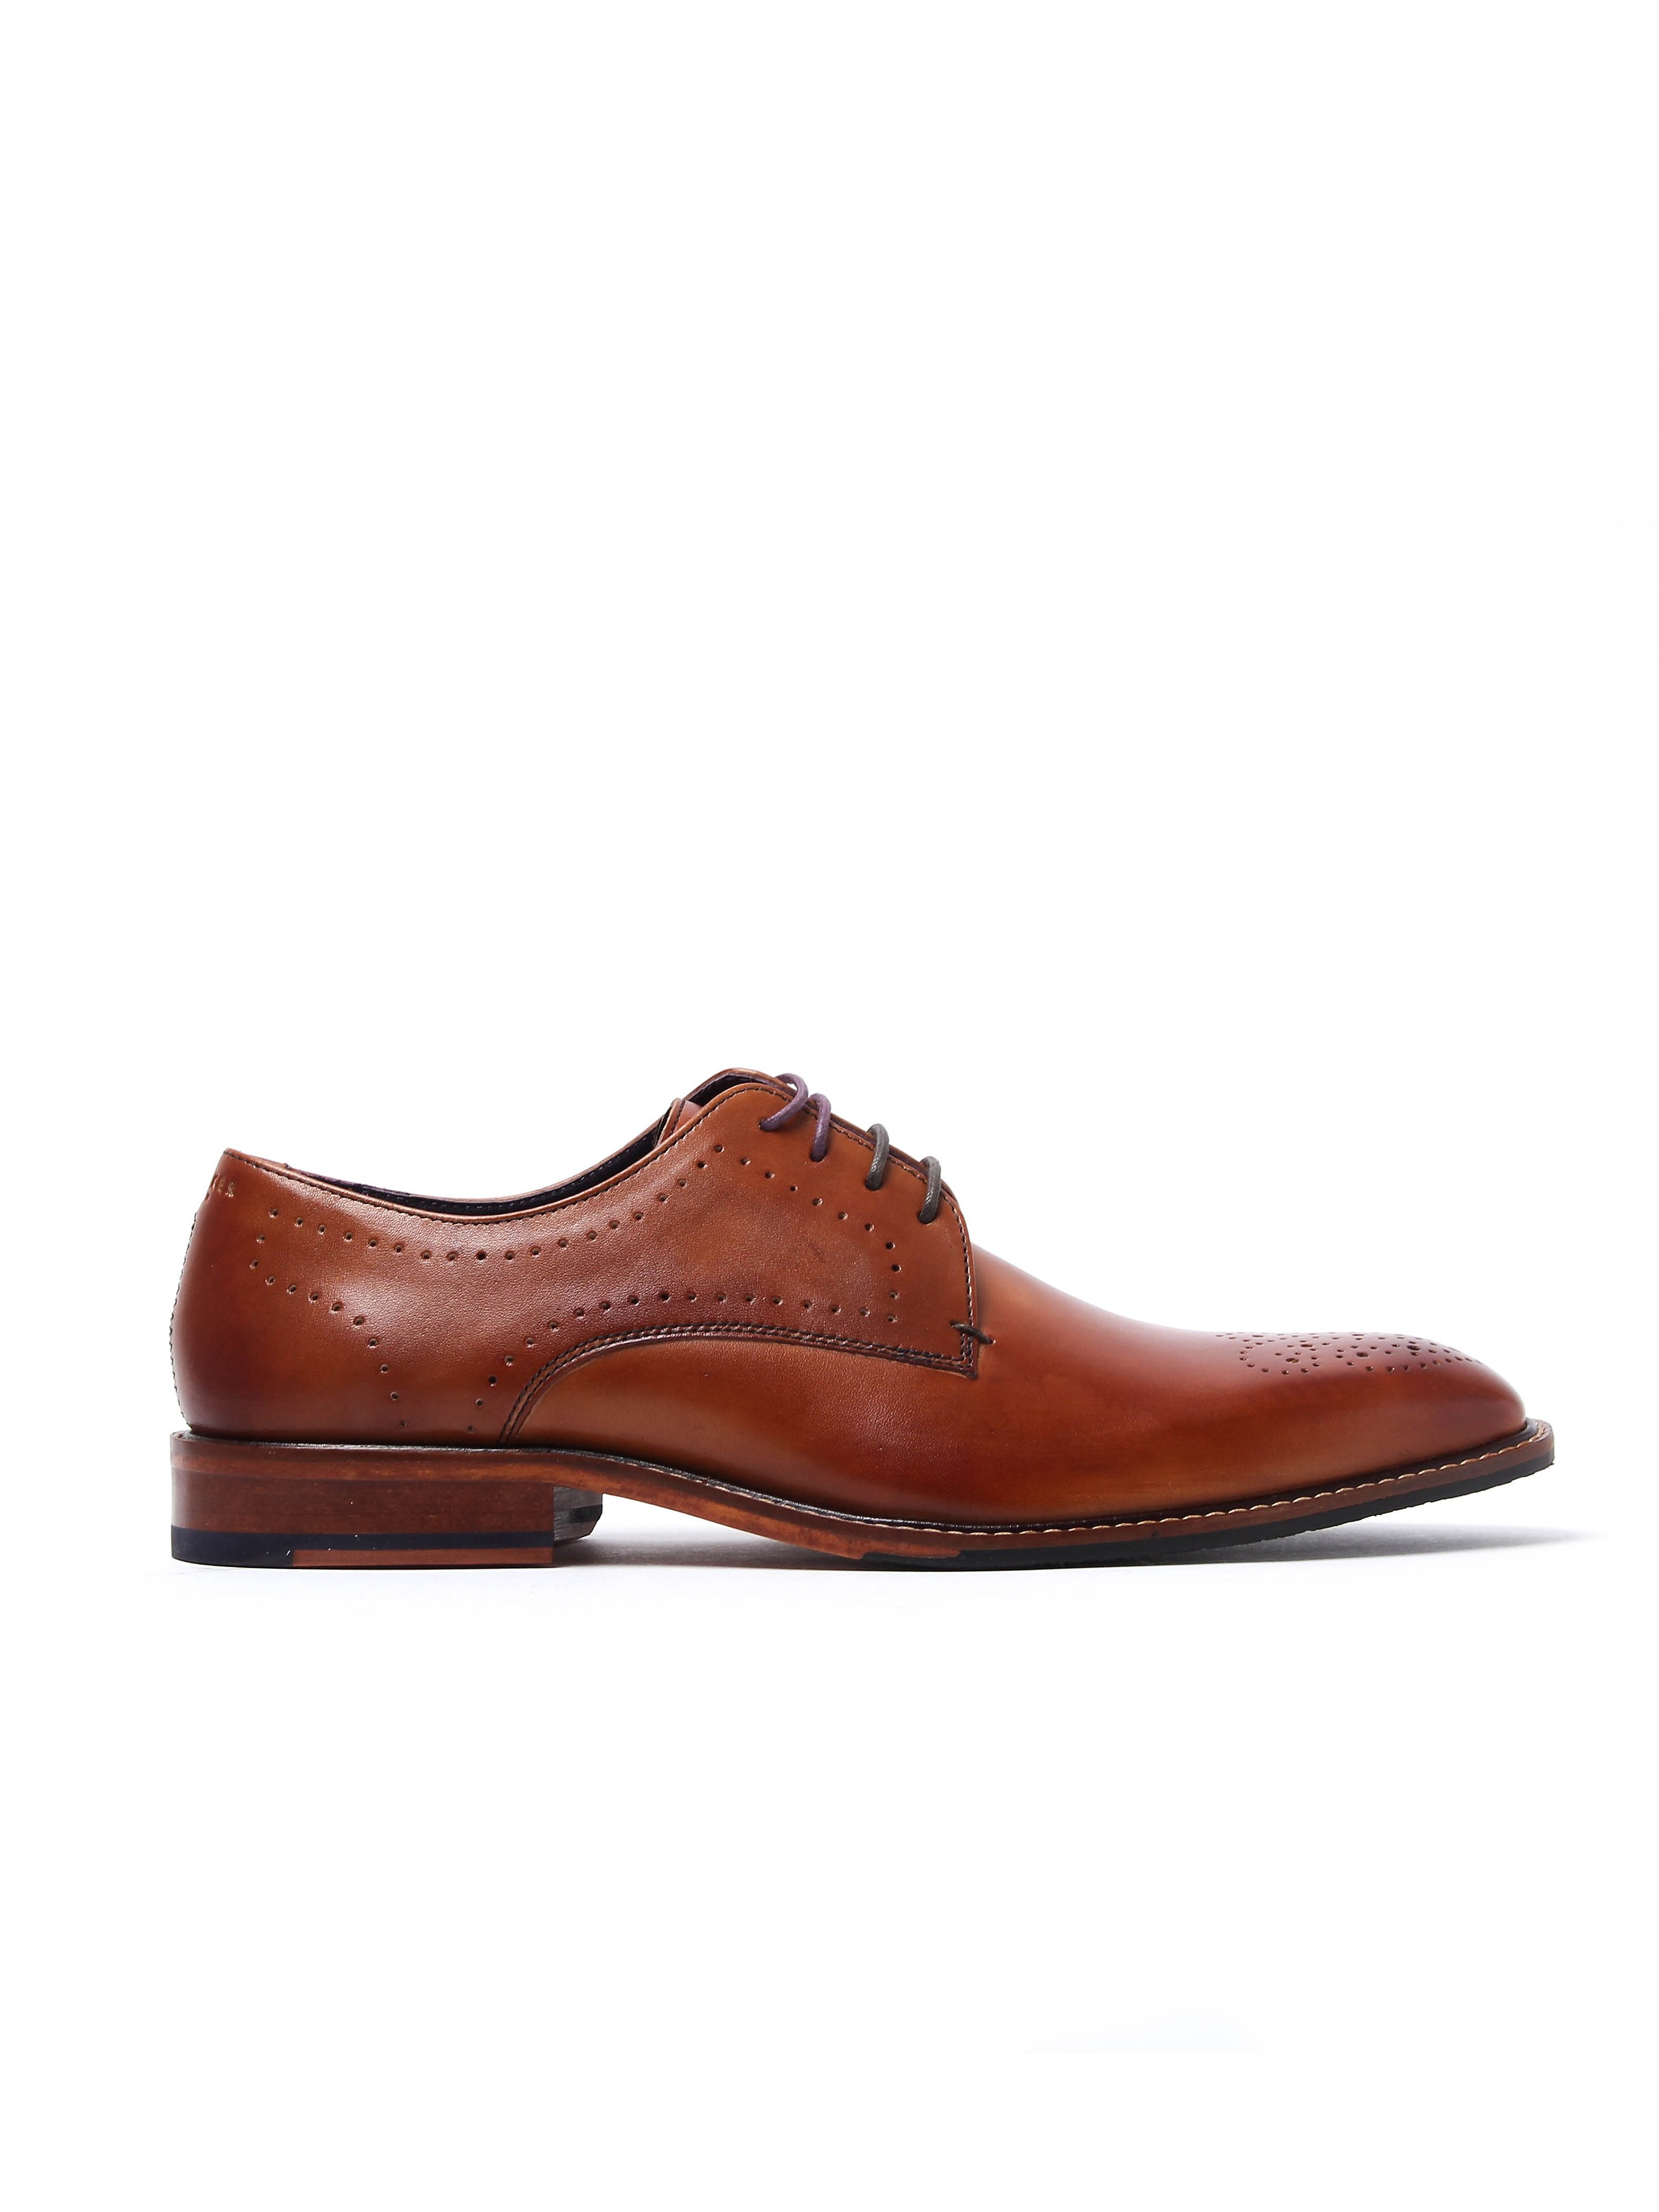 Ted Baker Men's Marar Derby Shoes - Tan Leather